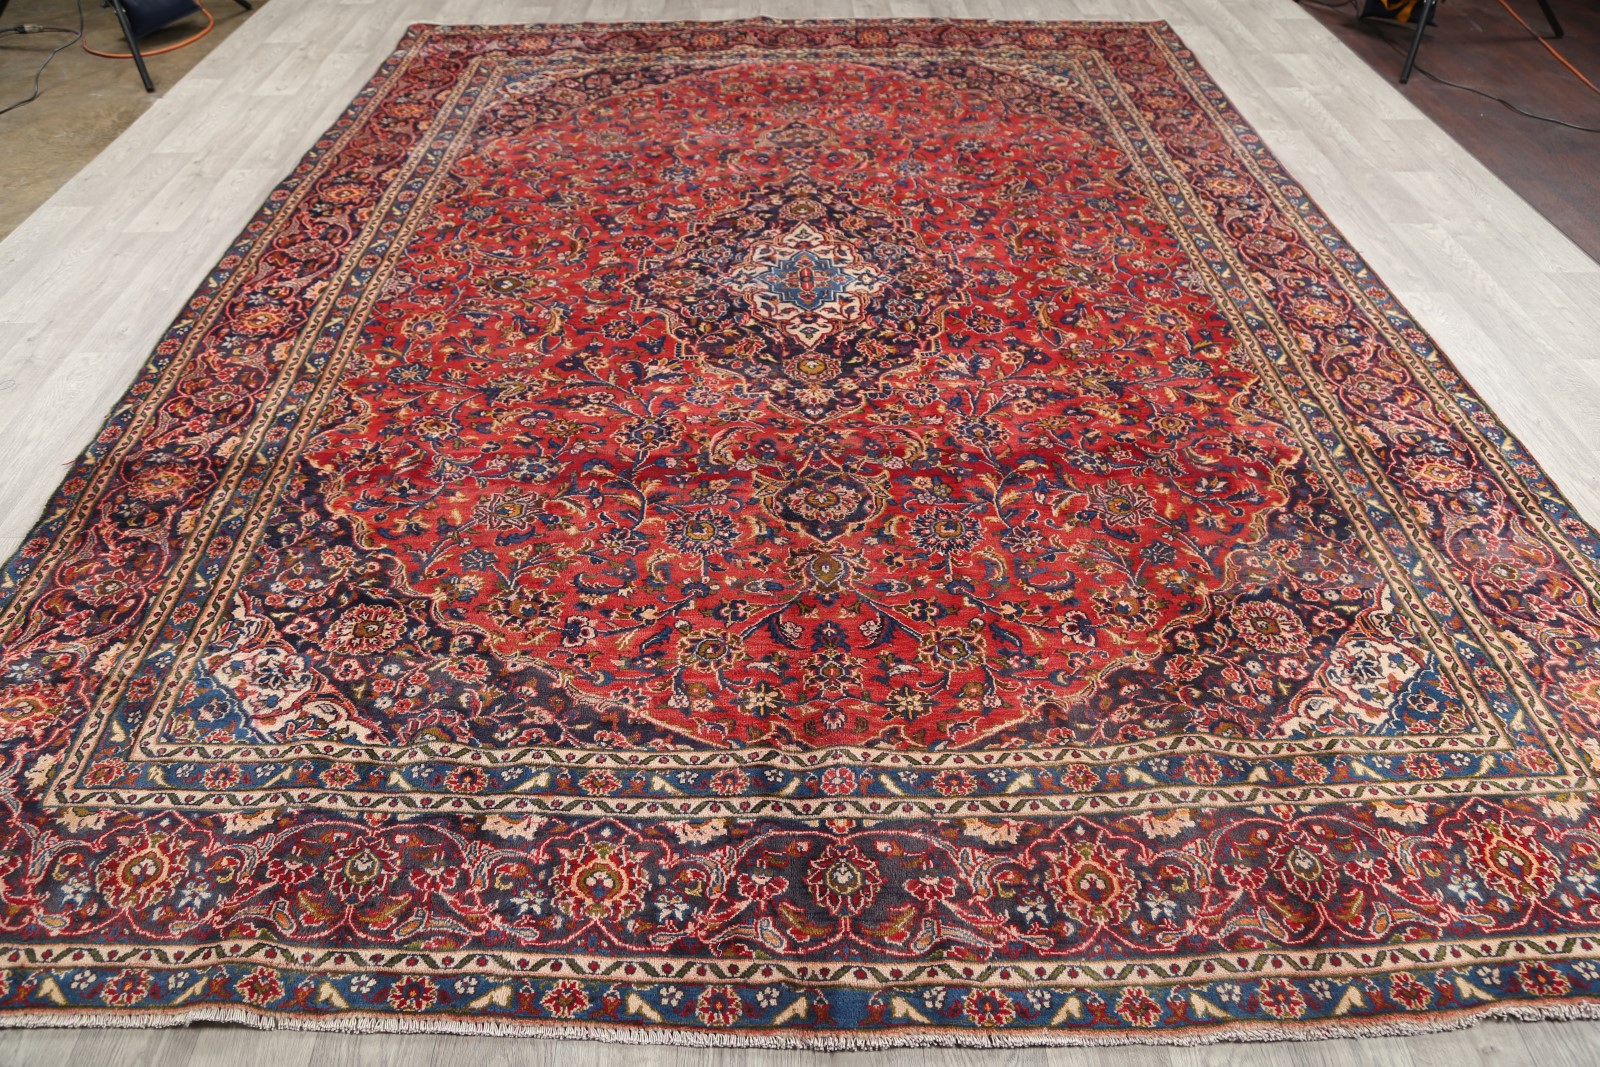 9x12 Area Rugs Clearance Lowes Area Rugs Clearance Home